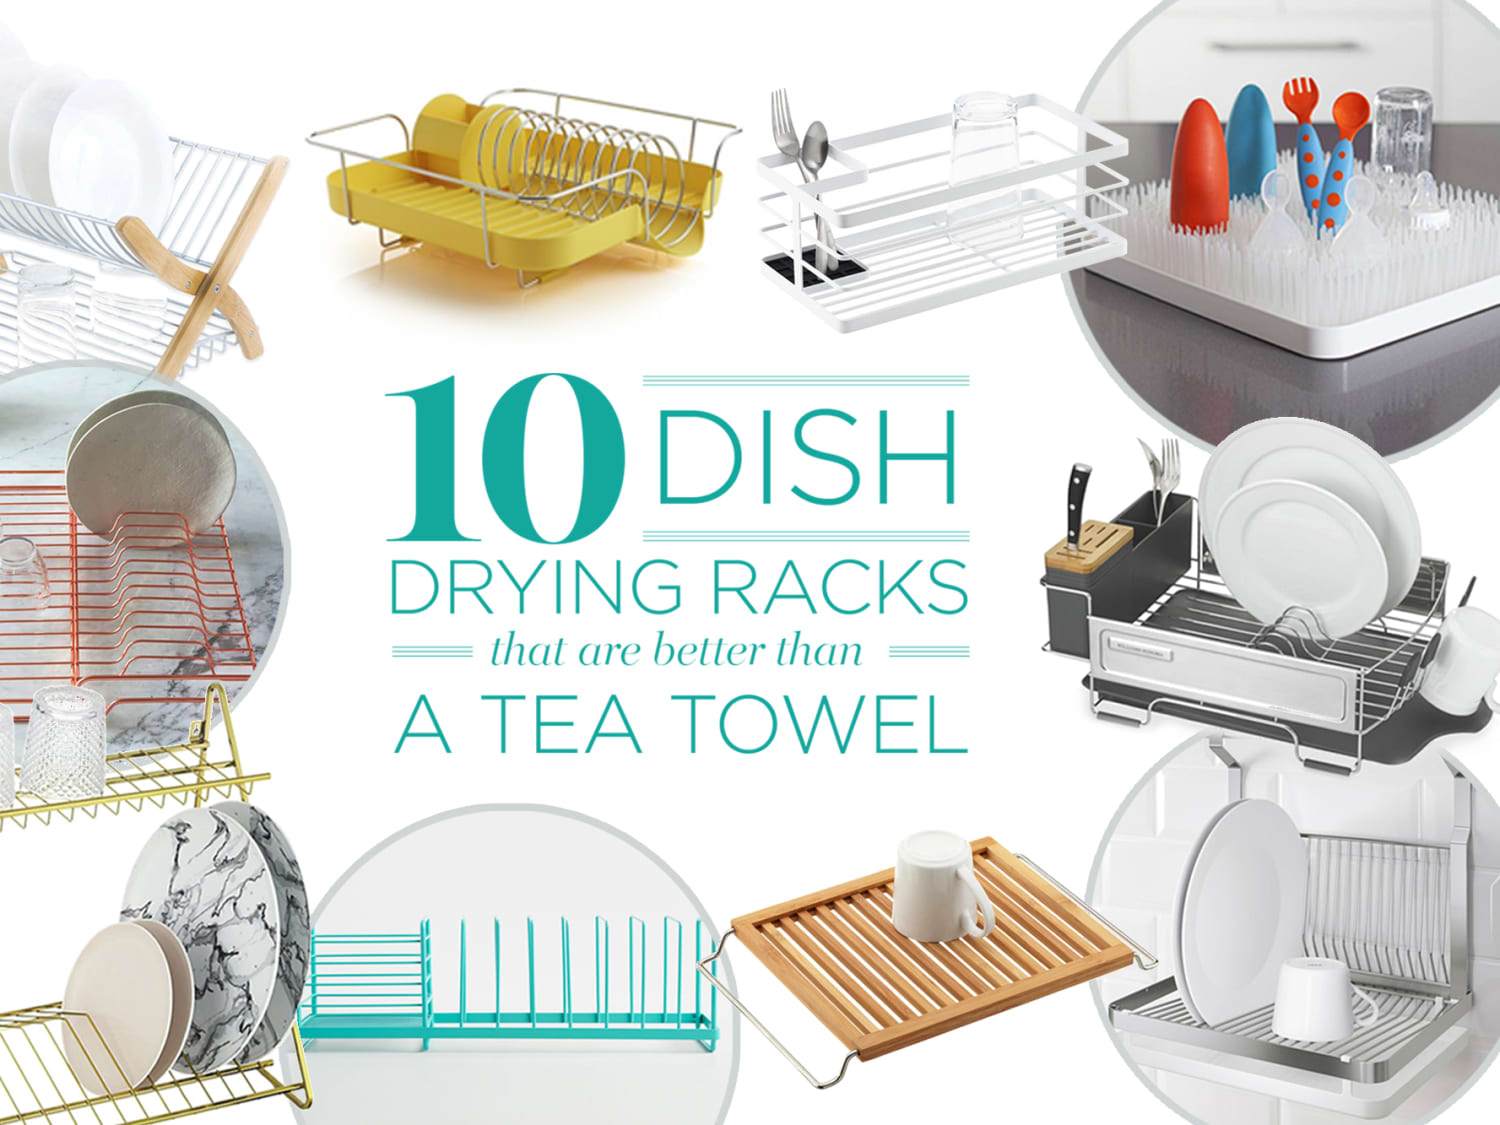 10 dish drying racks that are better